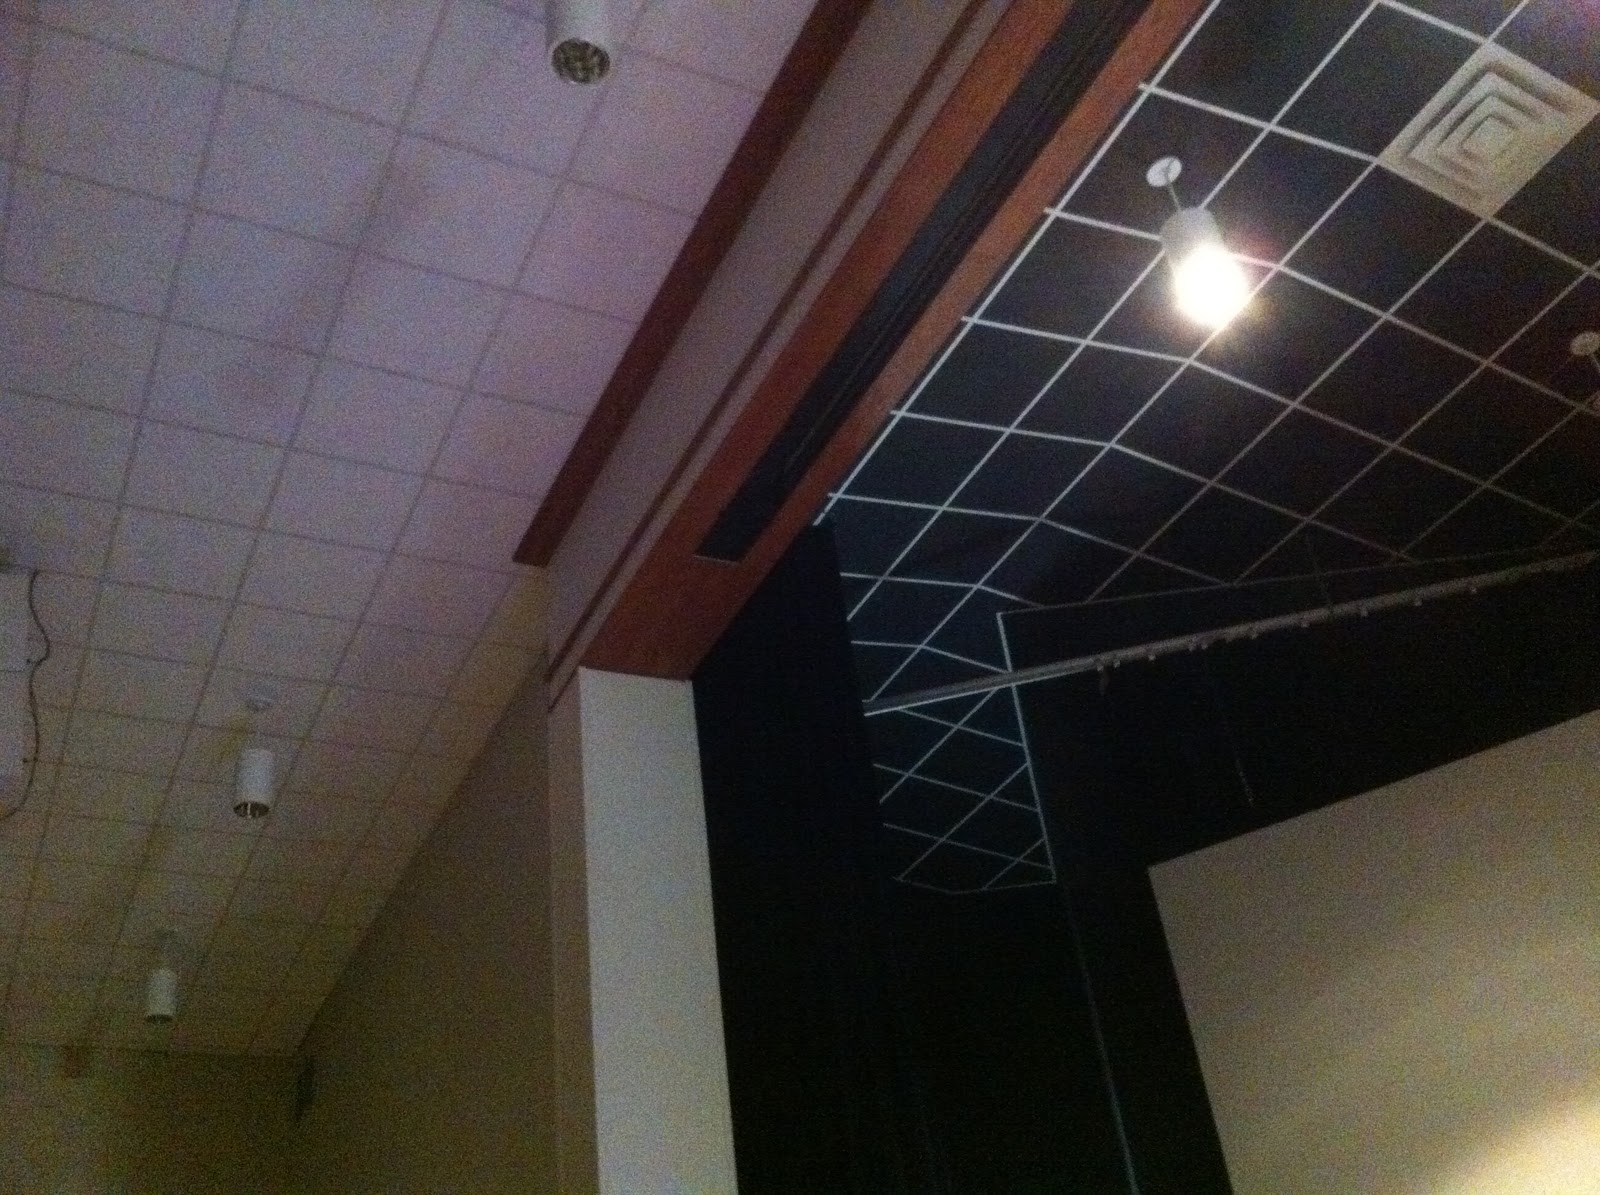 Worship macgyver painting walls and ceiling tiles changed our painting walls and ceiling tiles changed our whole stage doublecrazyfo Image collections